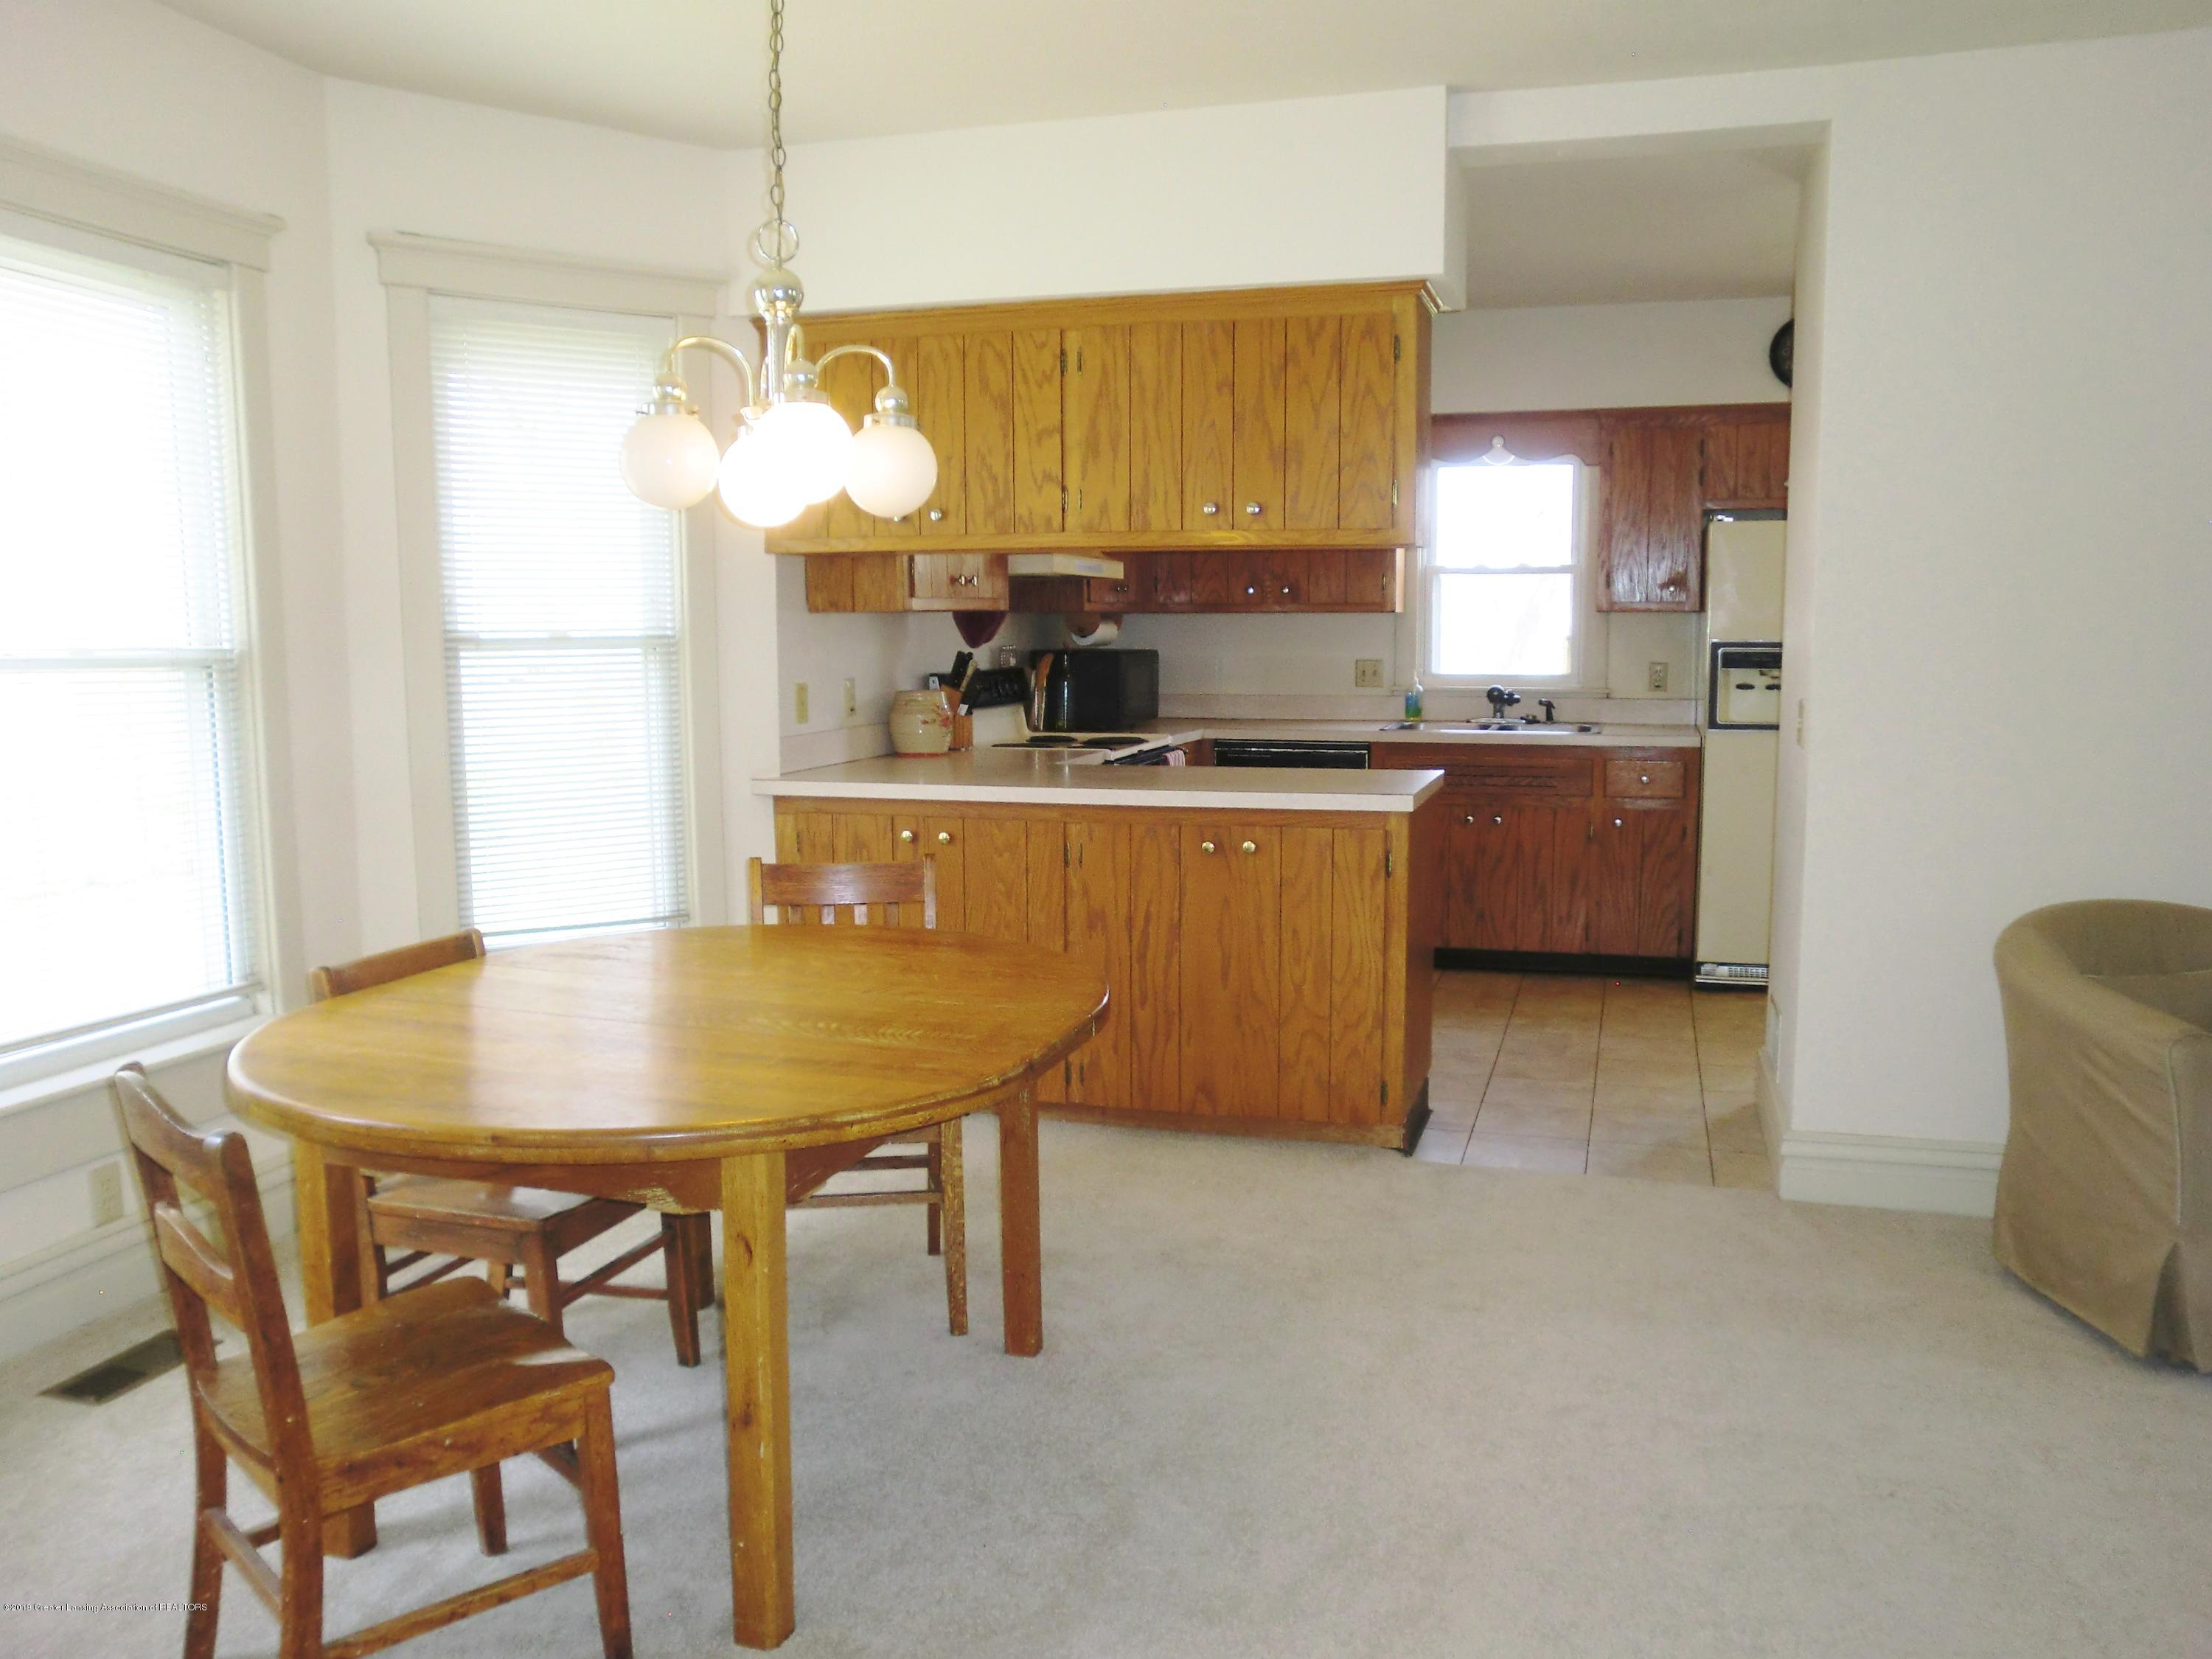 111 E Dwight St - Dining/Kitchen Area - 13